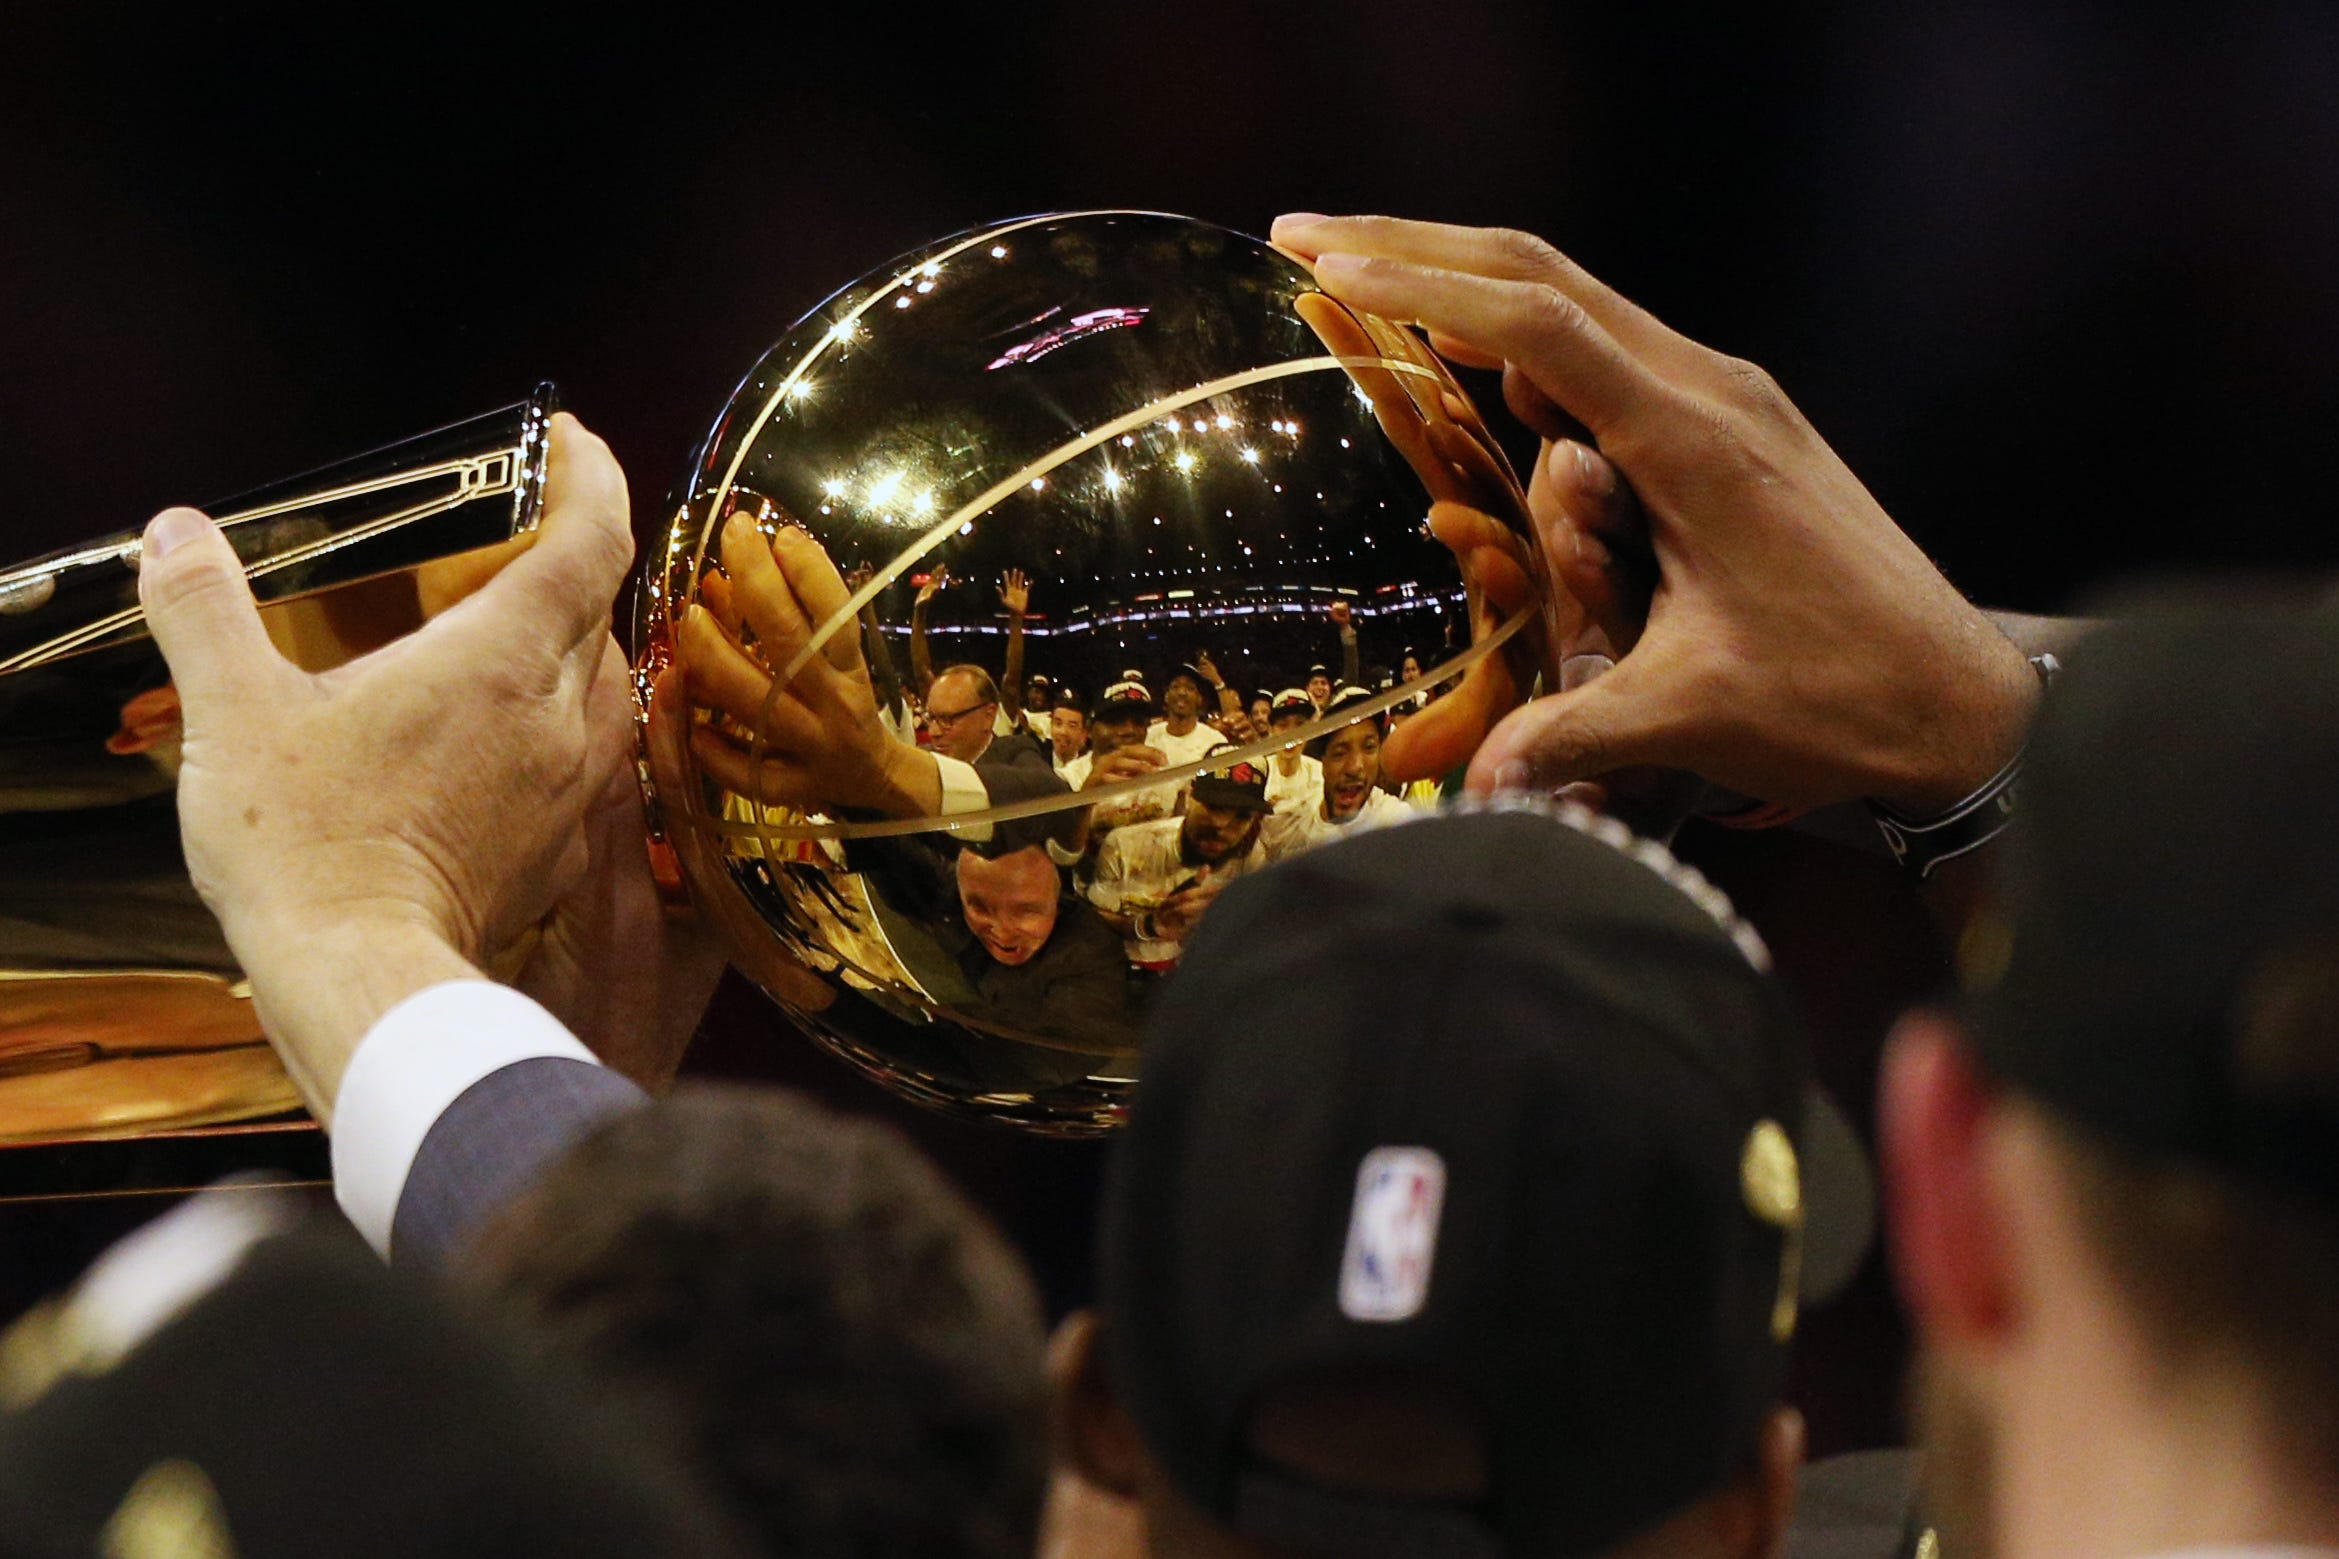 Opinion: Why this year's NBA champion does not deserve an asterisk